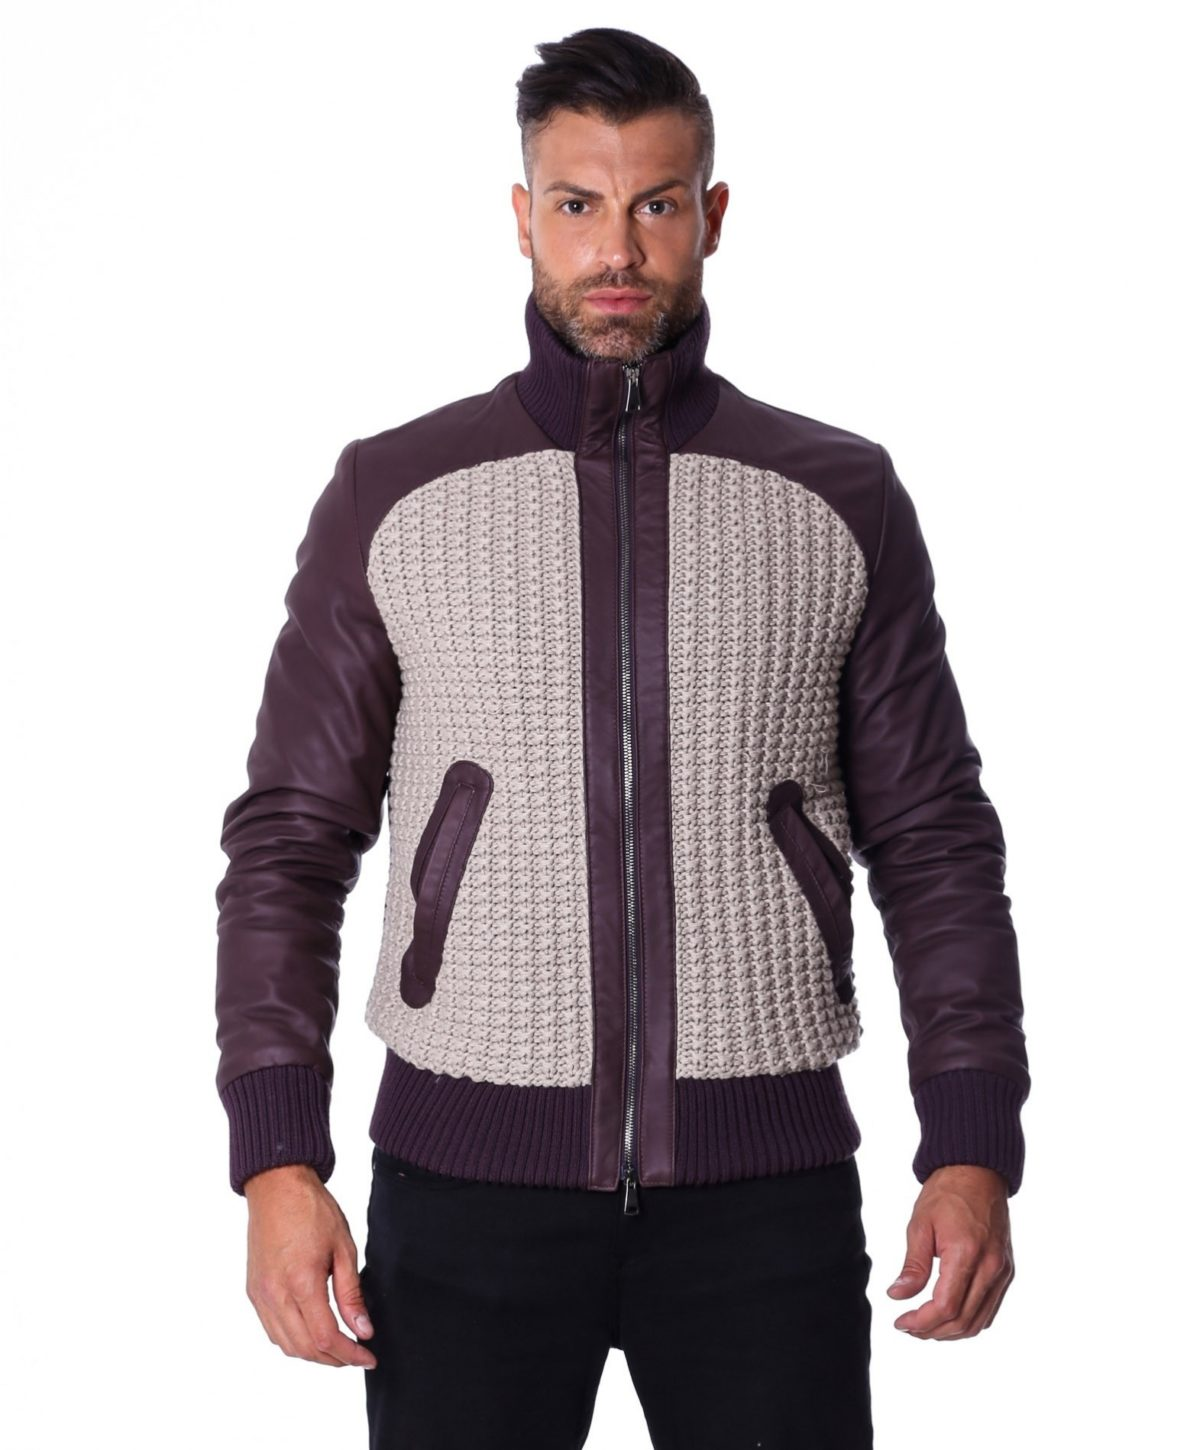 men-s-leather-jacket-style-bomber-wool-parts-and-zip-pockets-color-plum-u404